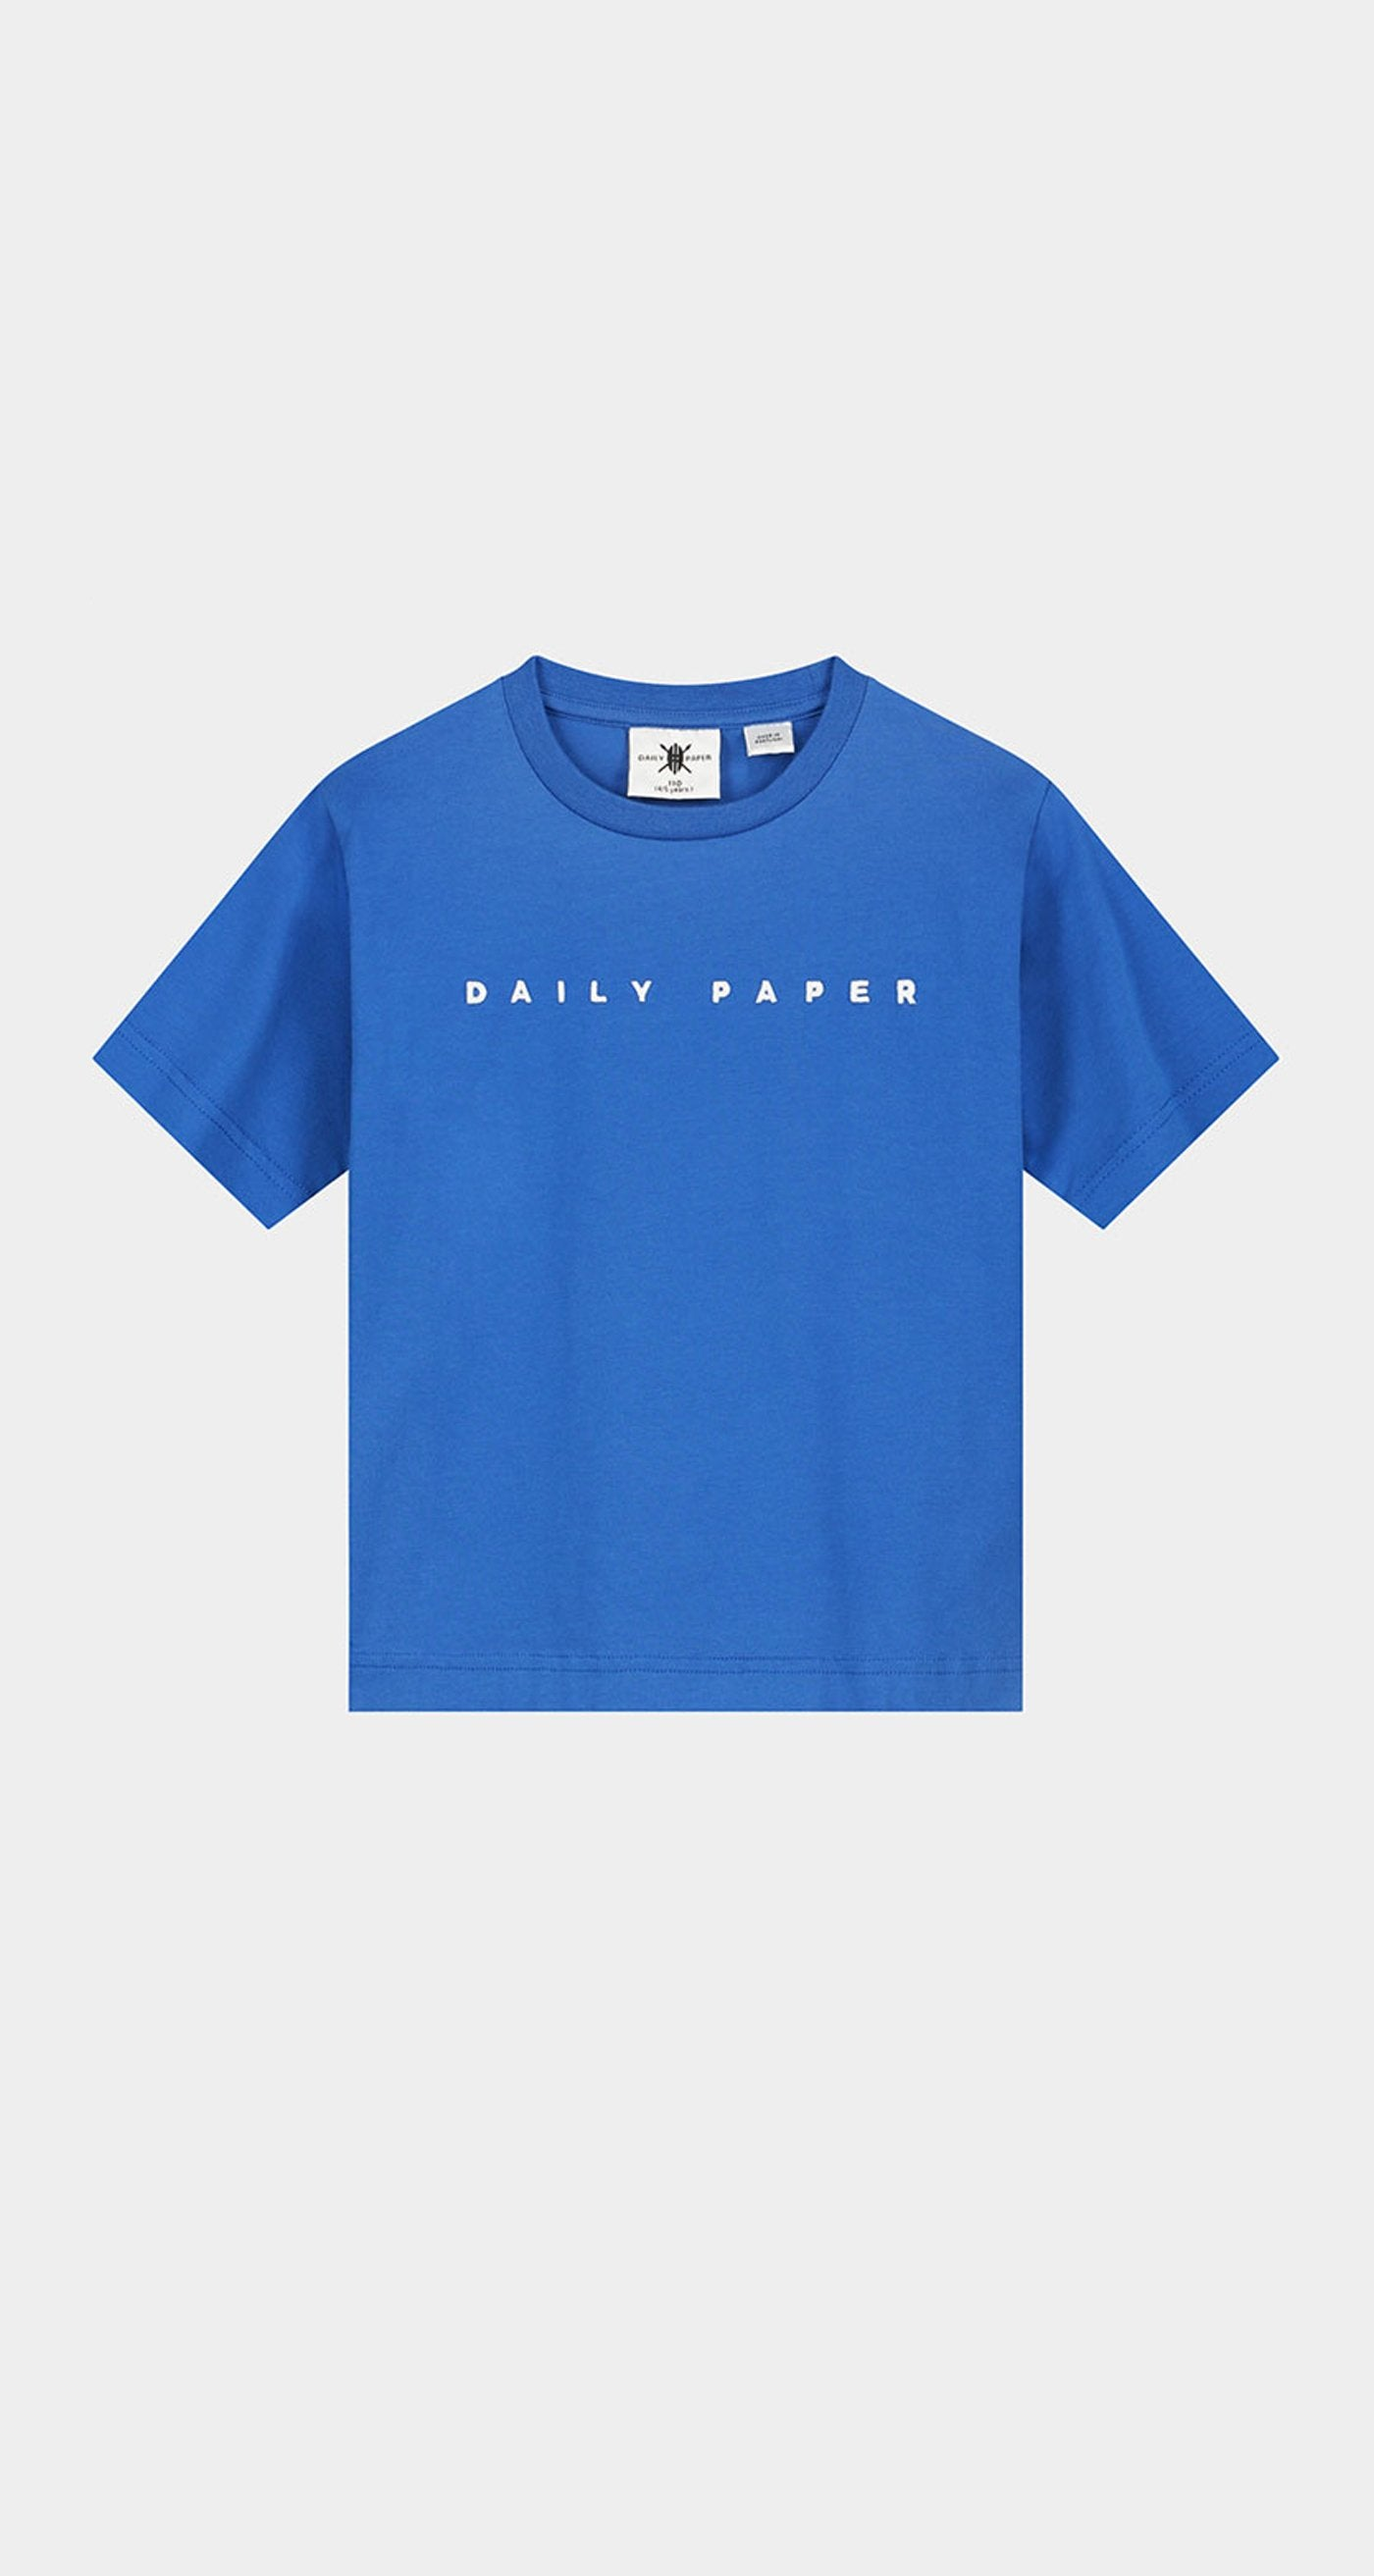 Daily Paper - Olympian Blue Kids Alias T-Shirt Front